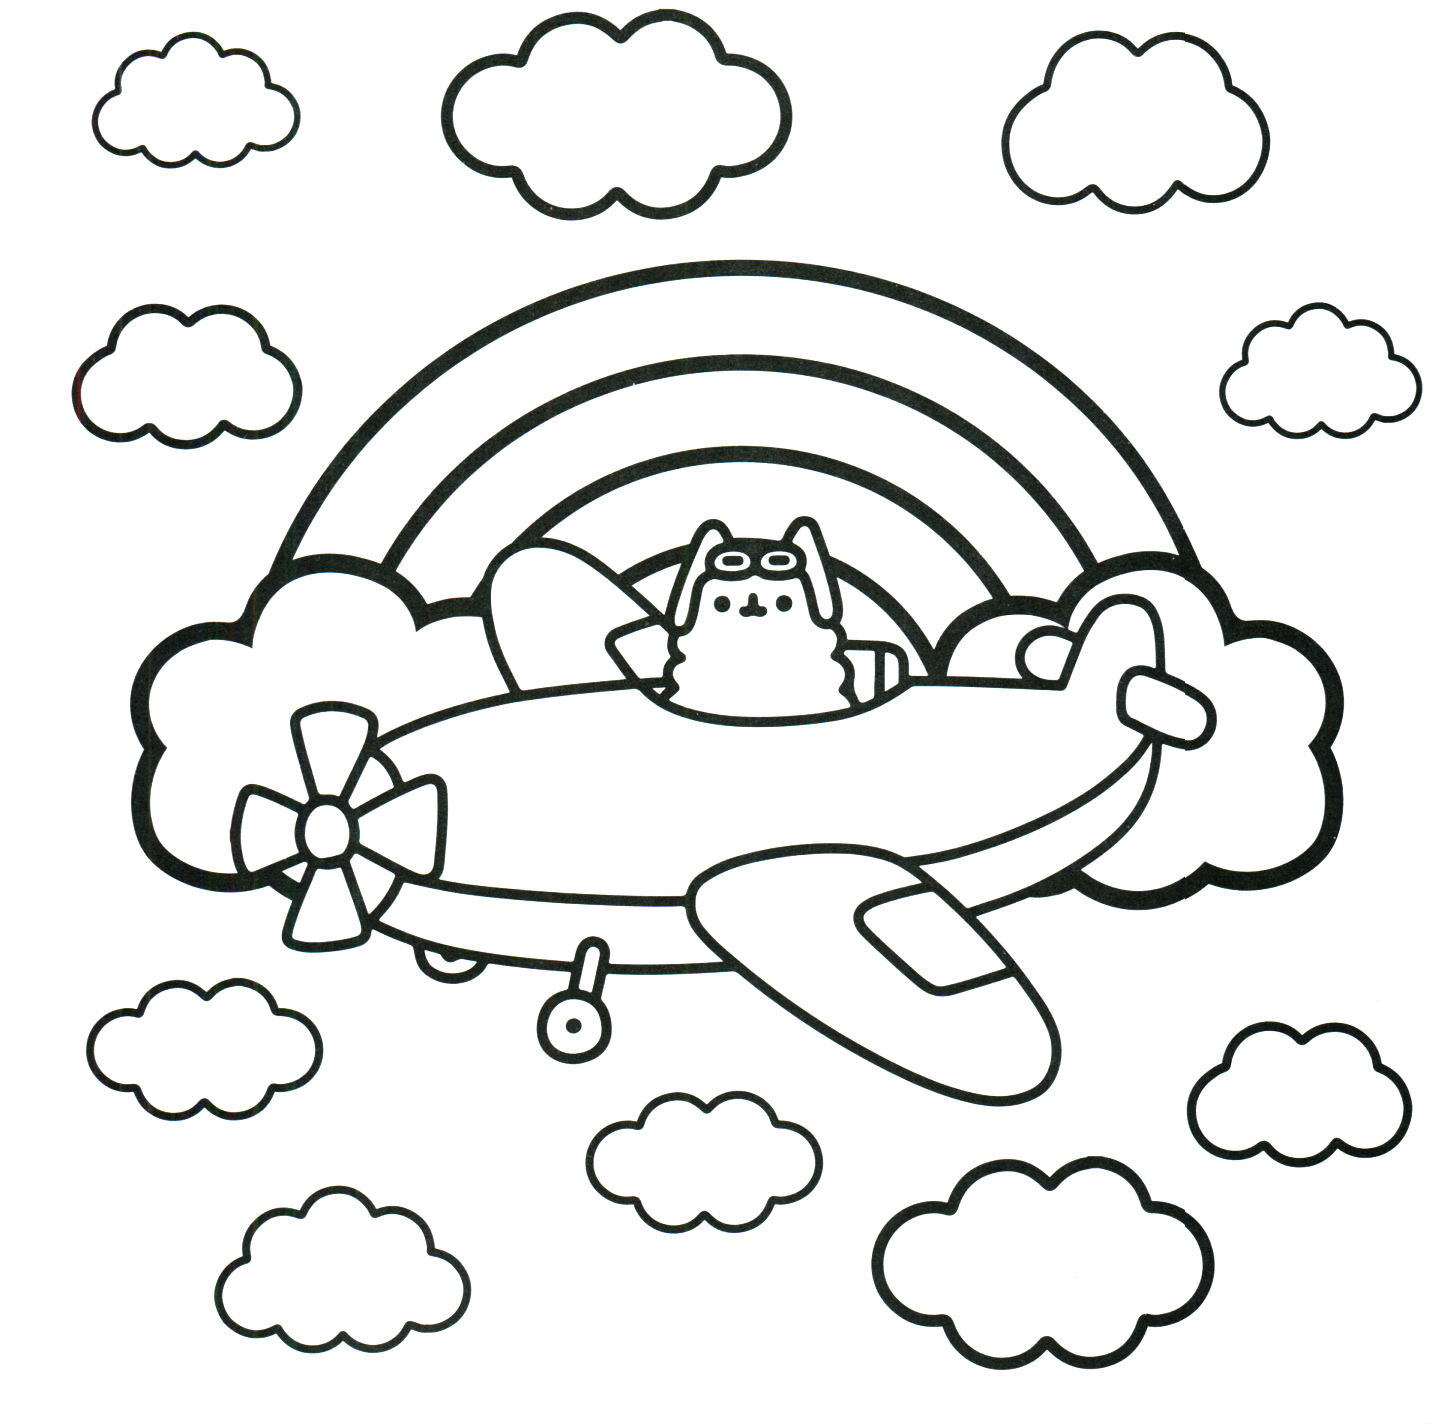 Pusheen coloring book pusheen pusheen the cat pusheen coloring book coloriage avion livre - Coloriage avion ...